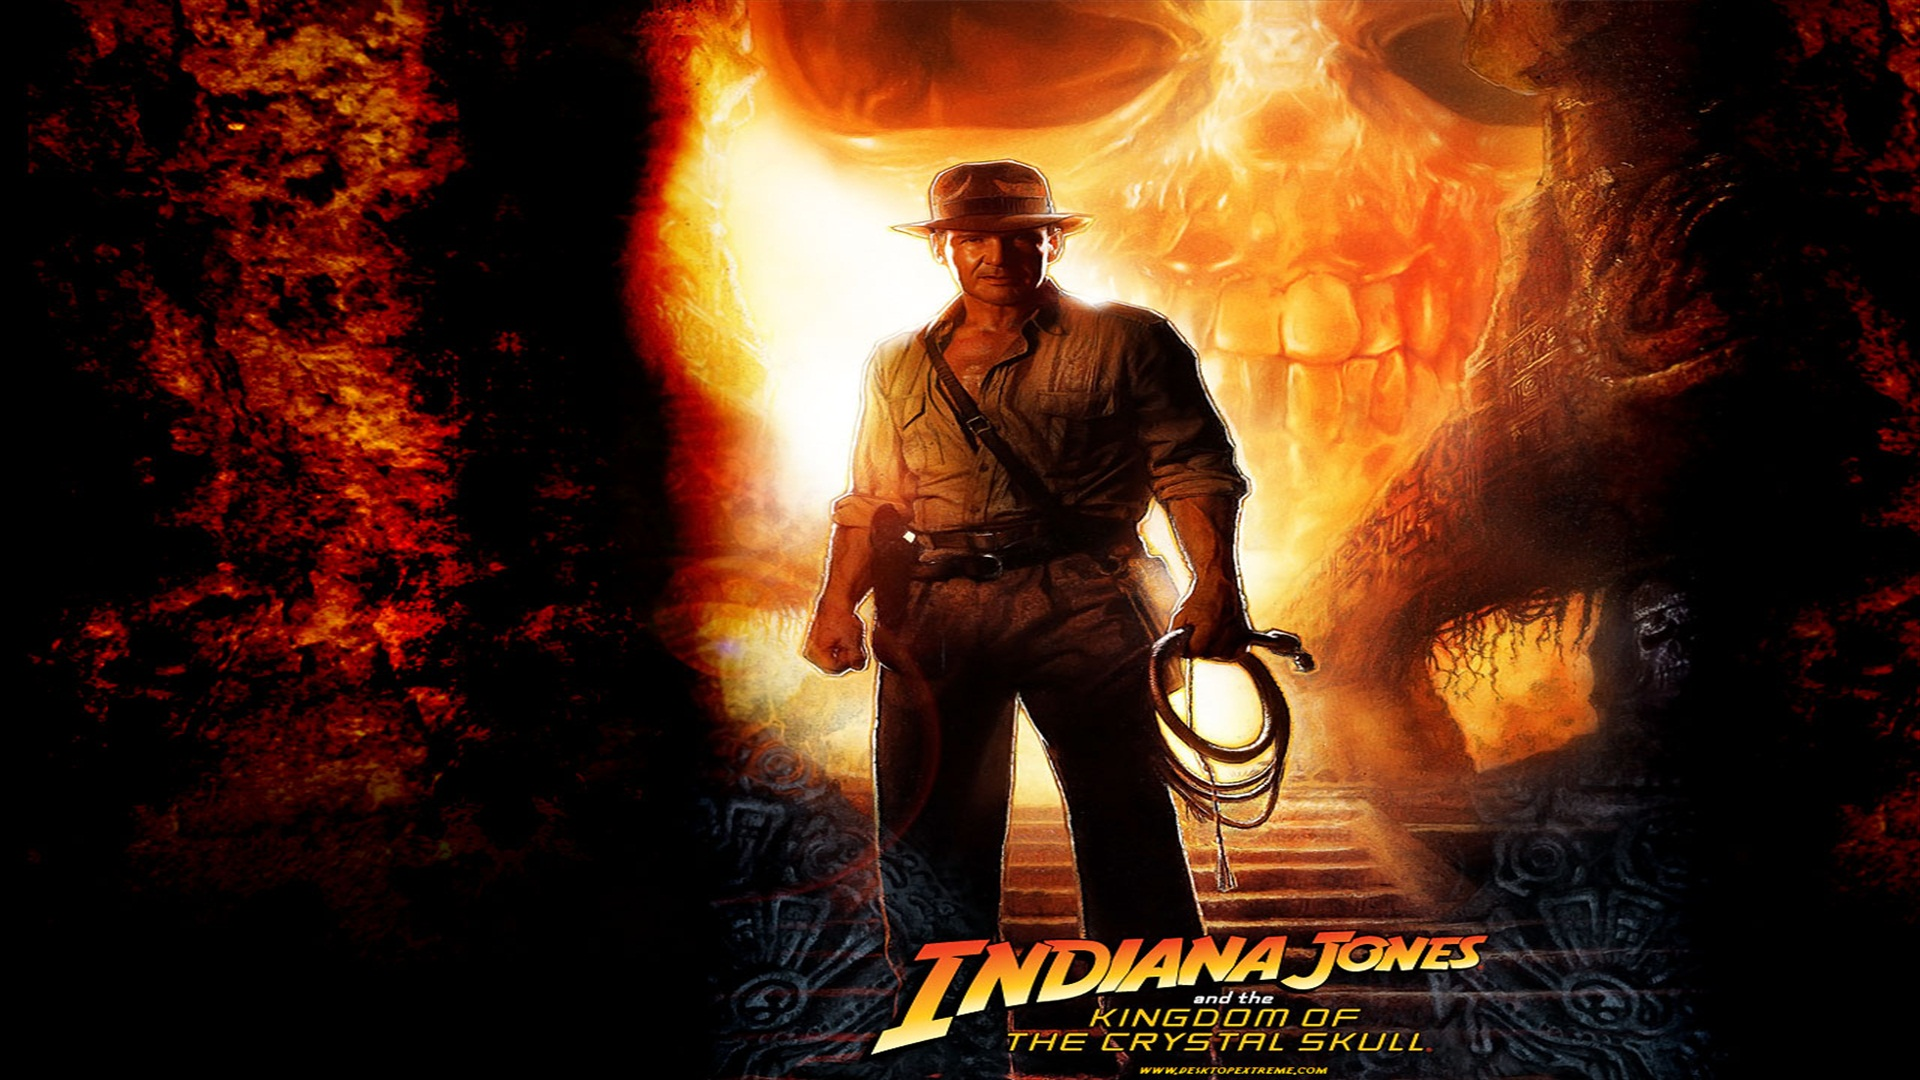 Indiana Jones And The Kingdom Of The Crystal Skull HD